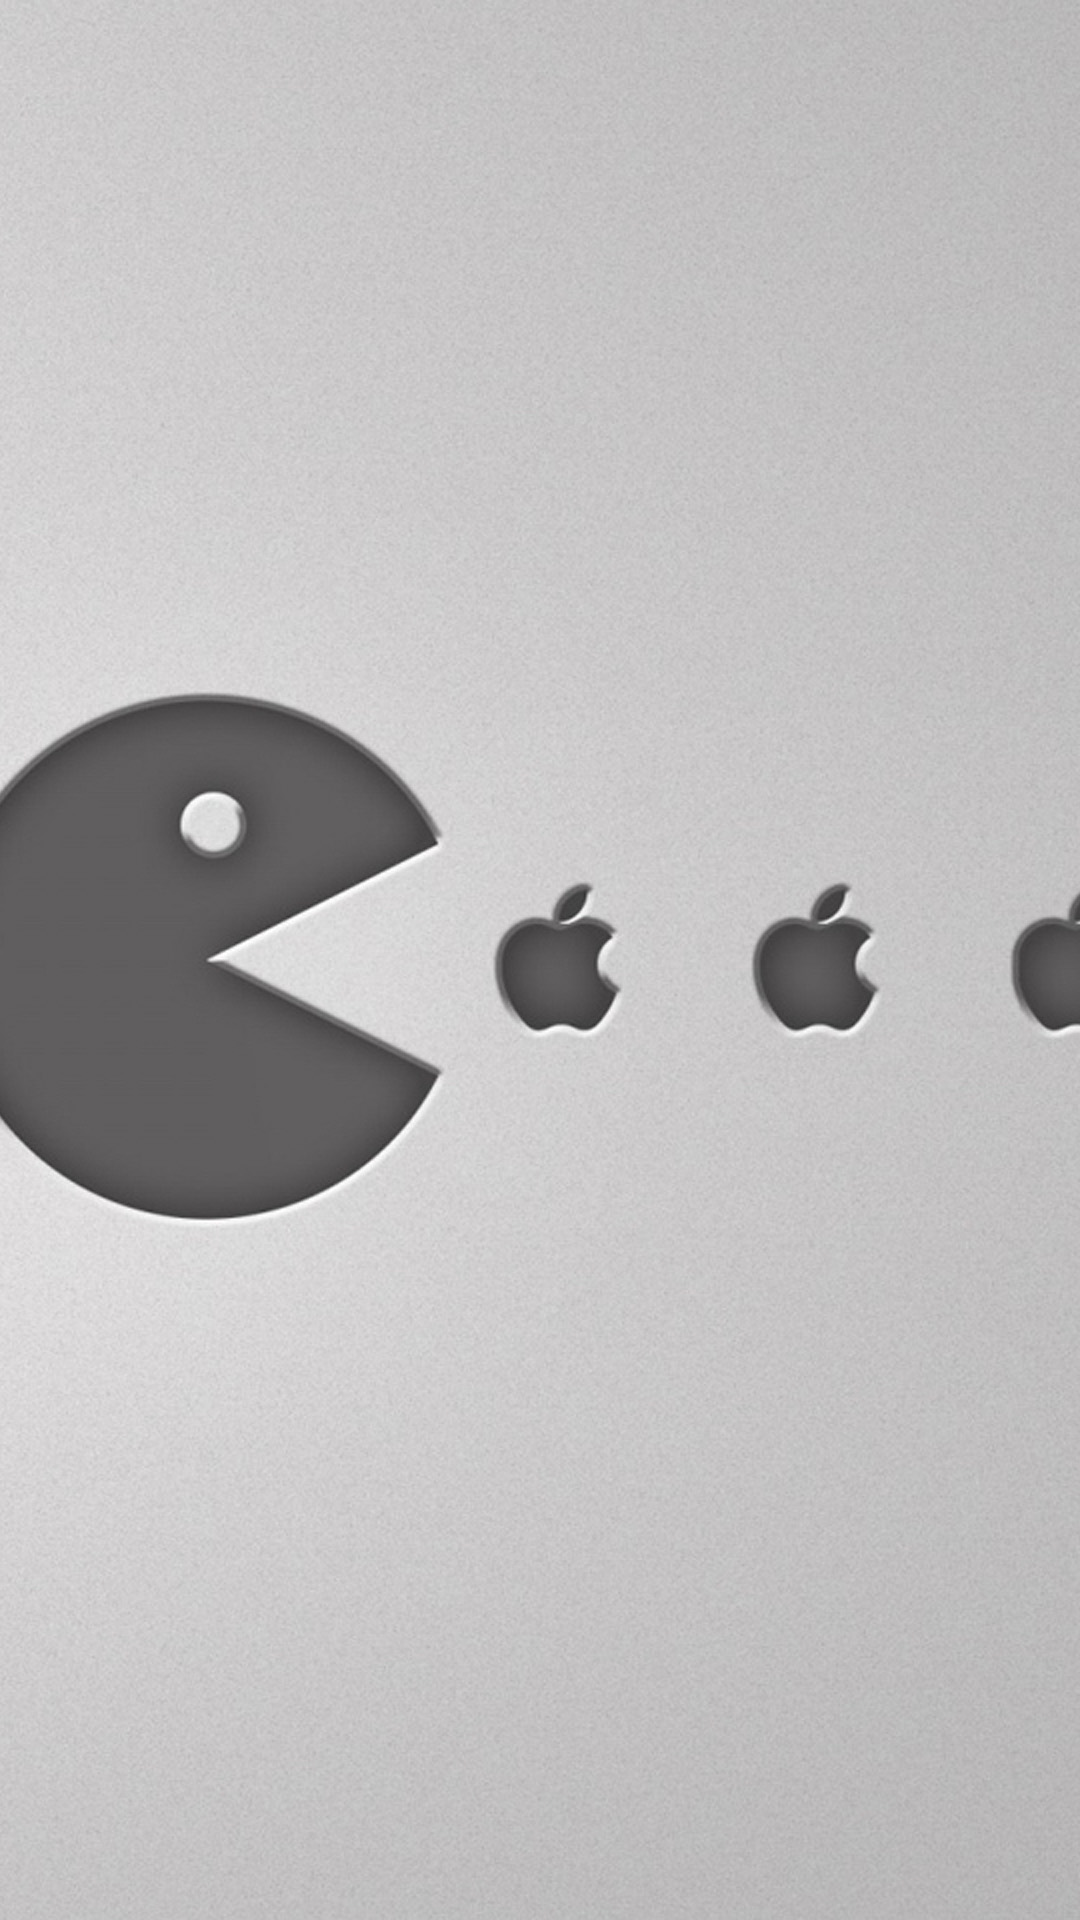 Pacman Eats Apple